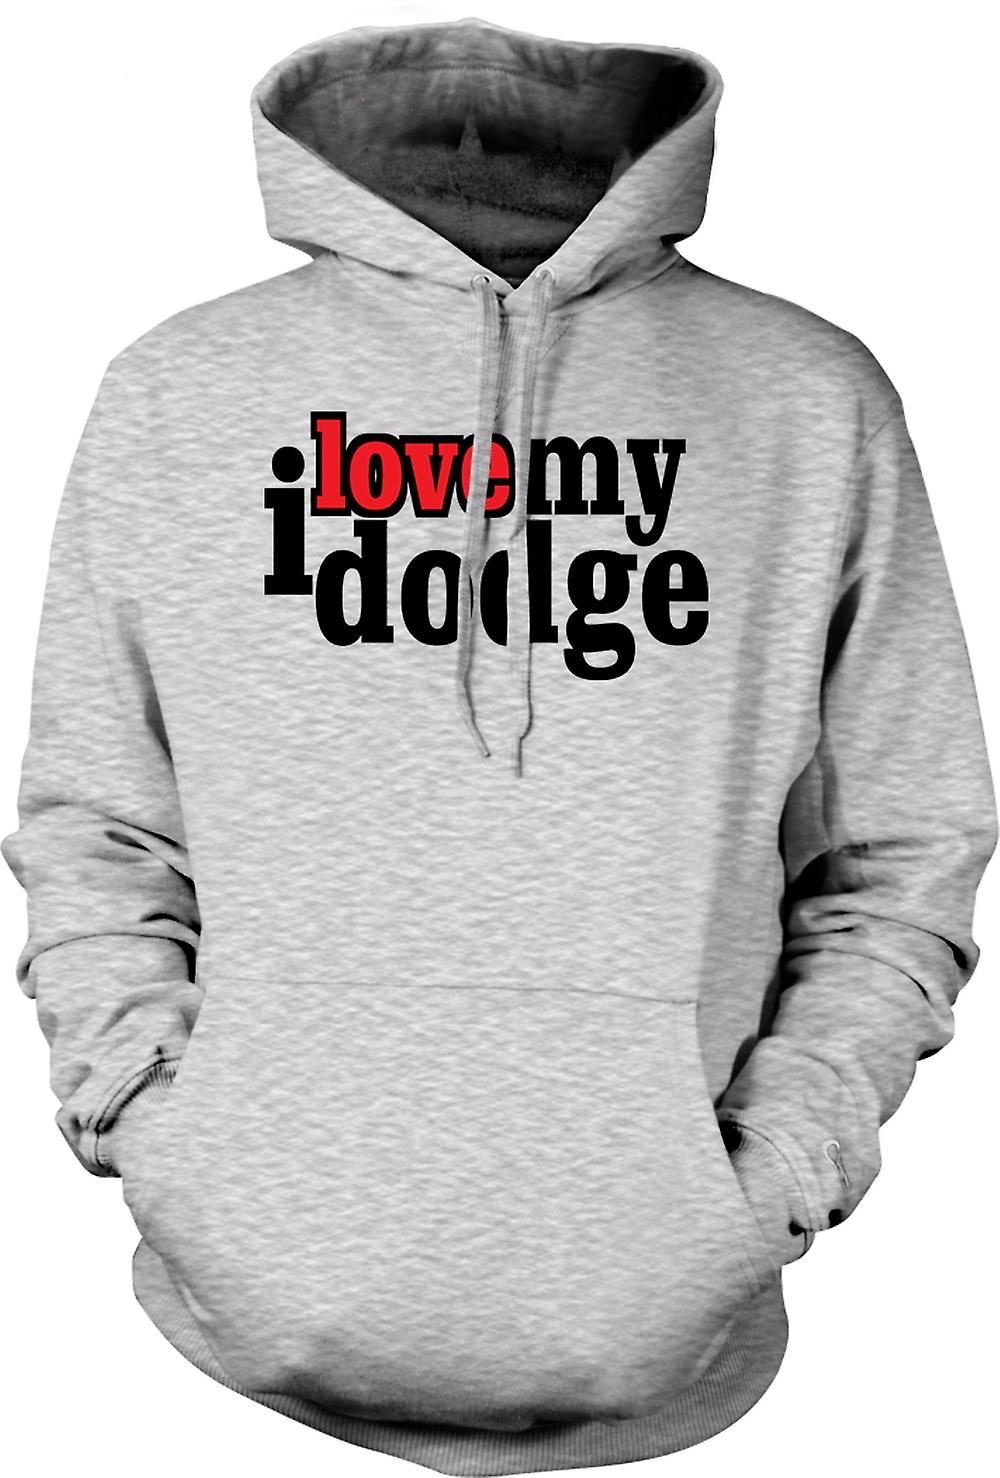 Mens Hoodie - I love my Dodge - Car Enthusiast